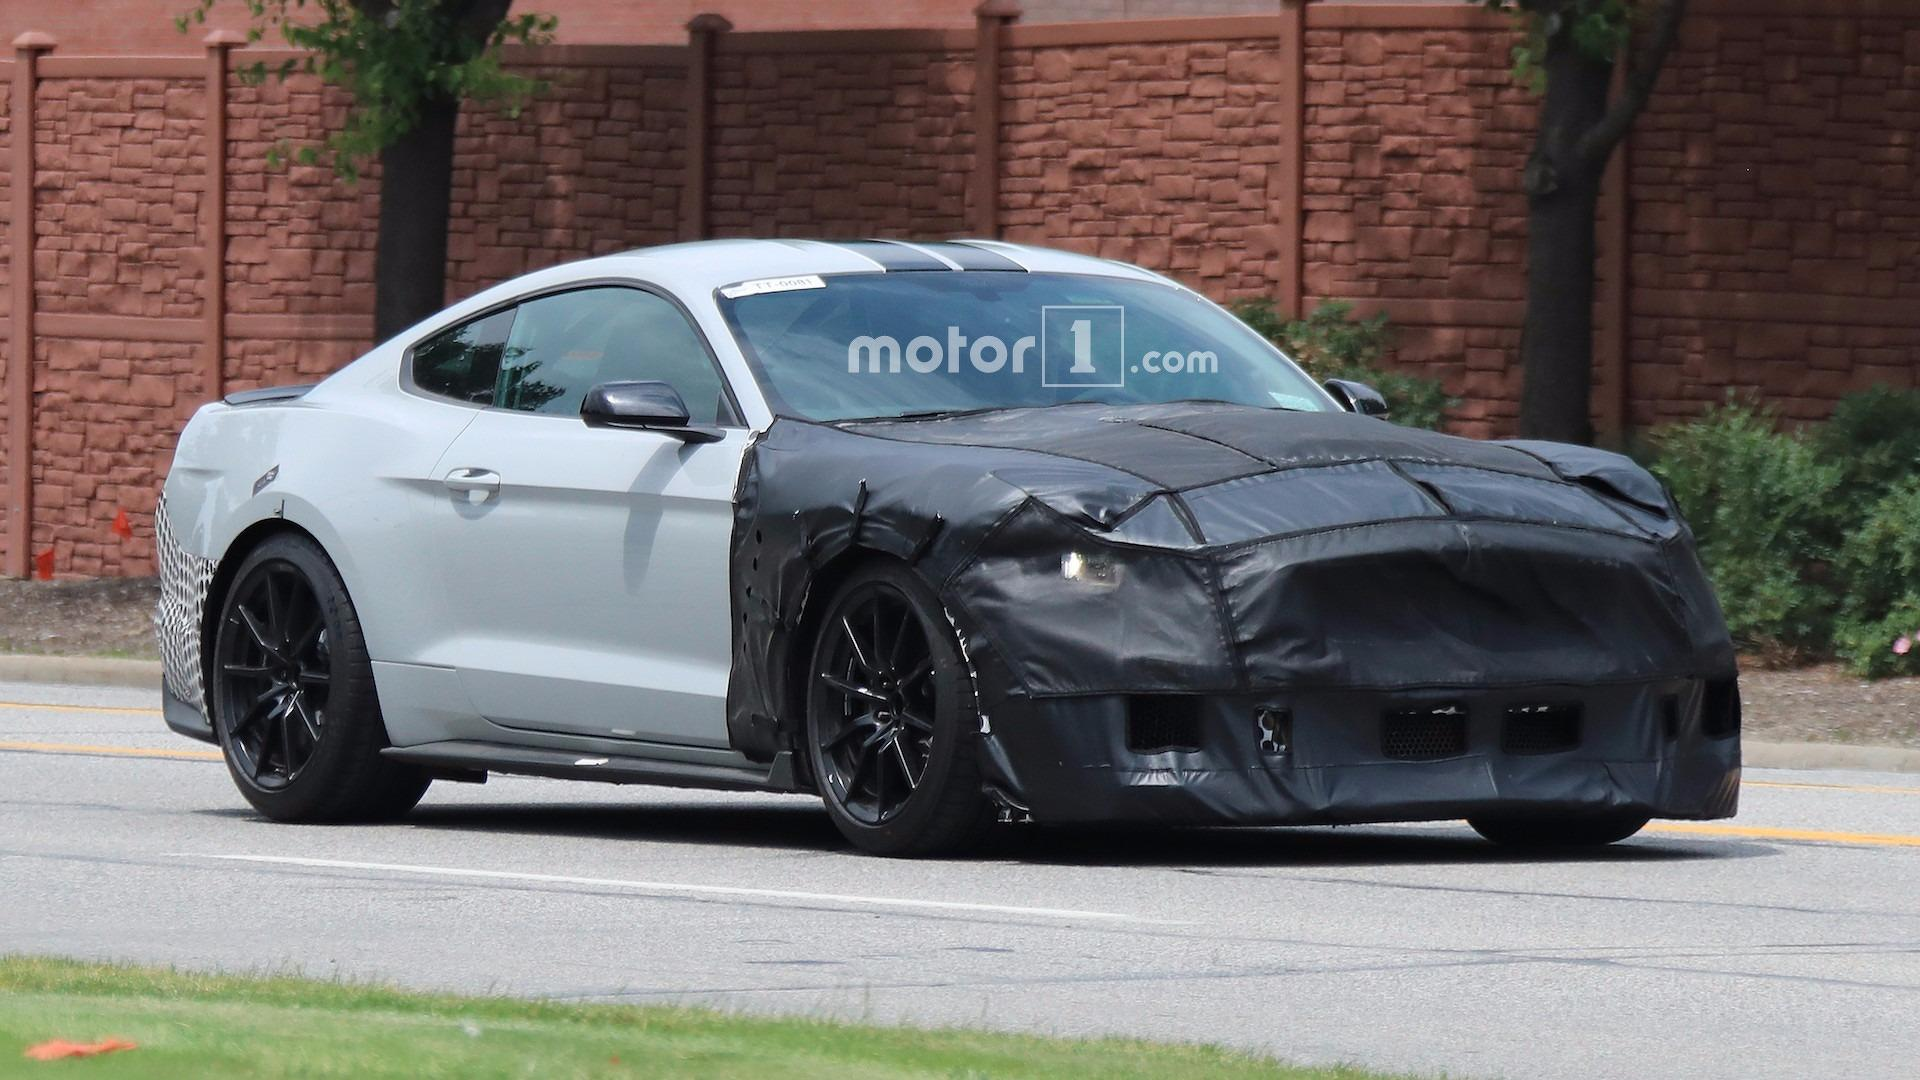 2019 ford mustang shelby gt500 looks aggressive in new rendering